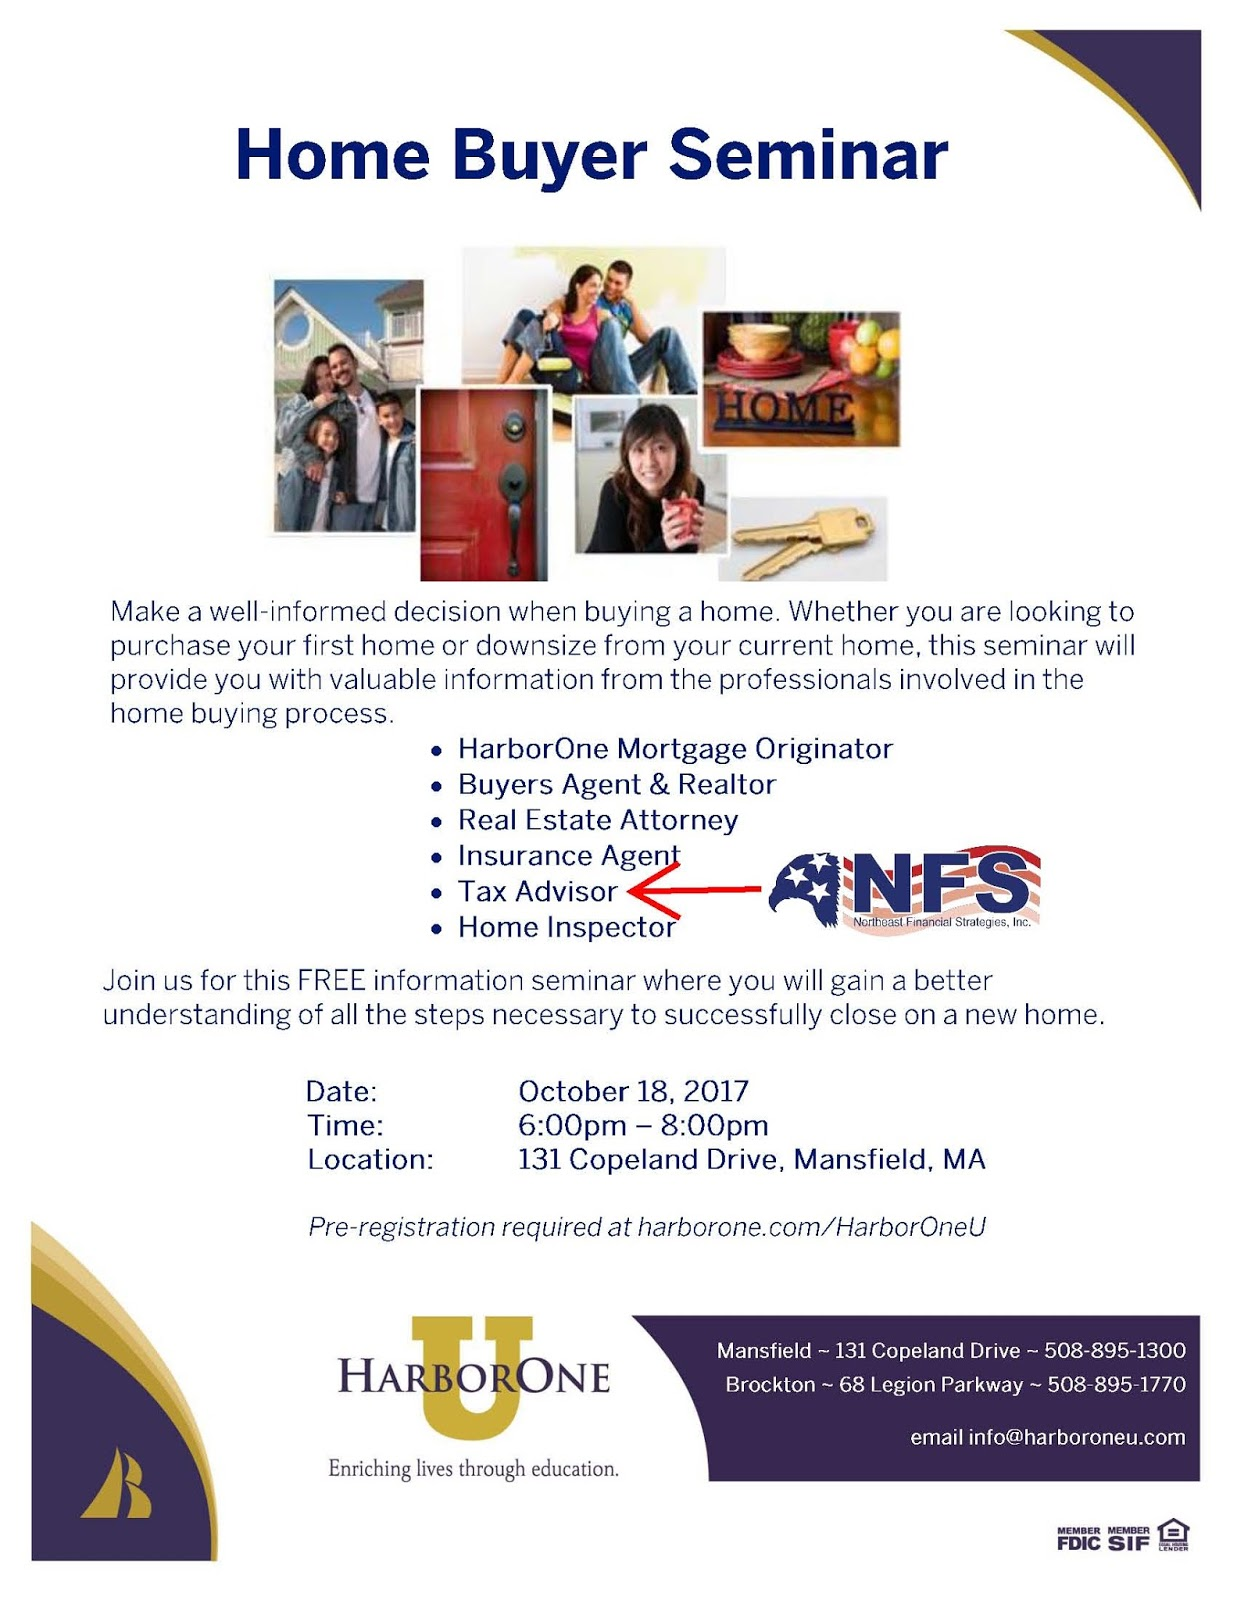 Northeast Financial Strategies Inc Wrentham MA Tax Accounting - First time home buyer flyer template